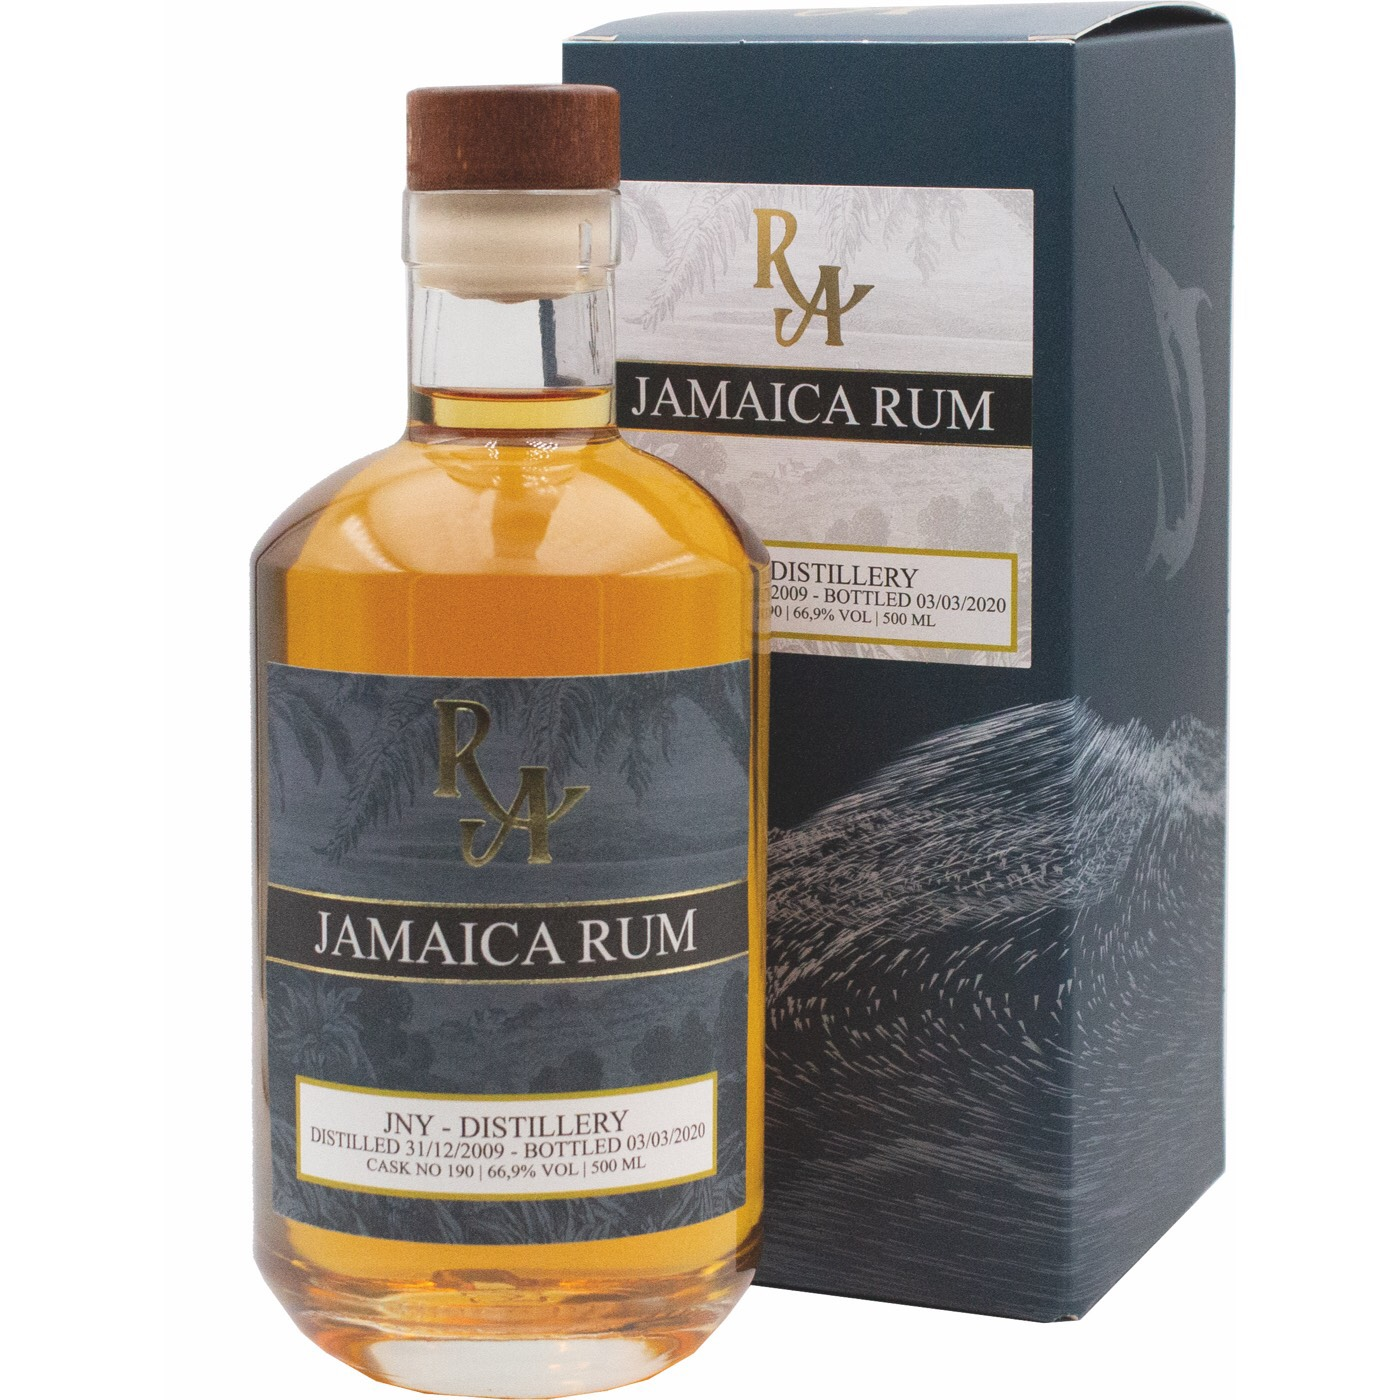 Bottle image of Rum Artesanal Jamaica Rum